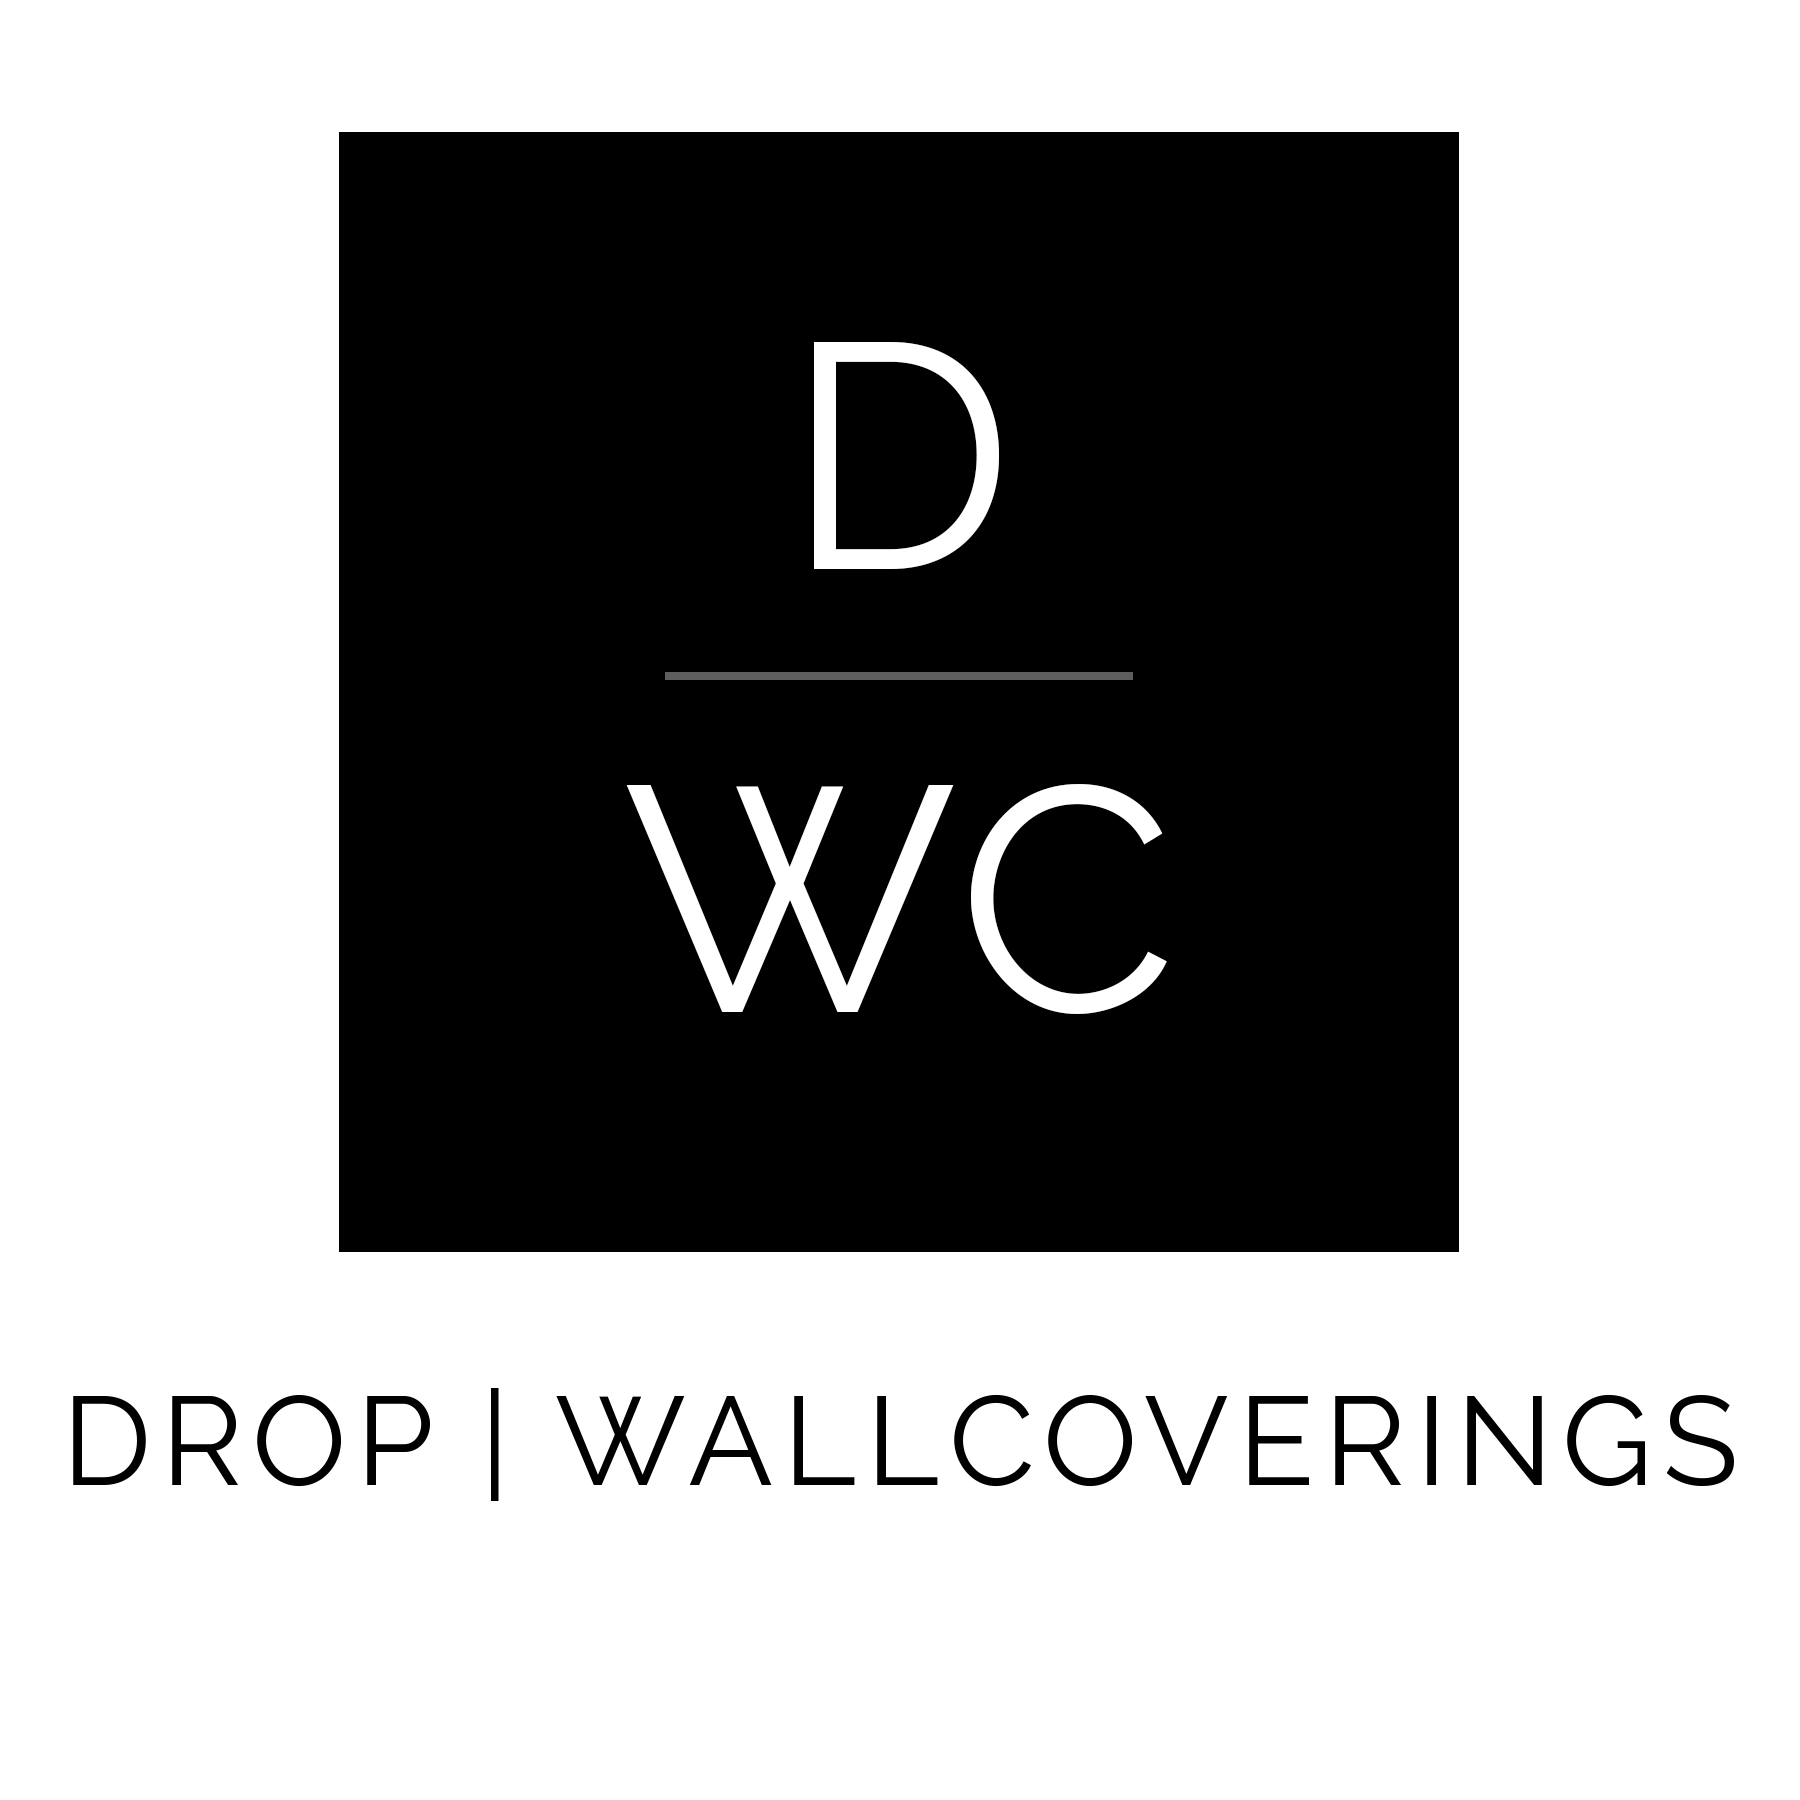 DWC Drop Wallcoverings